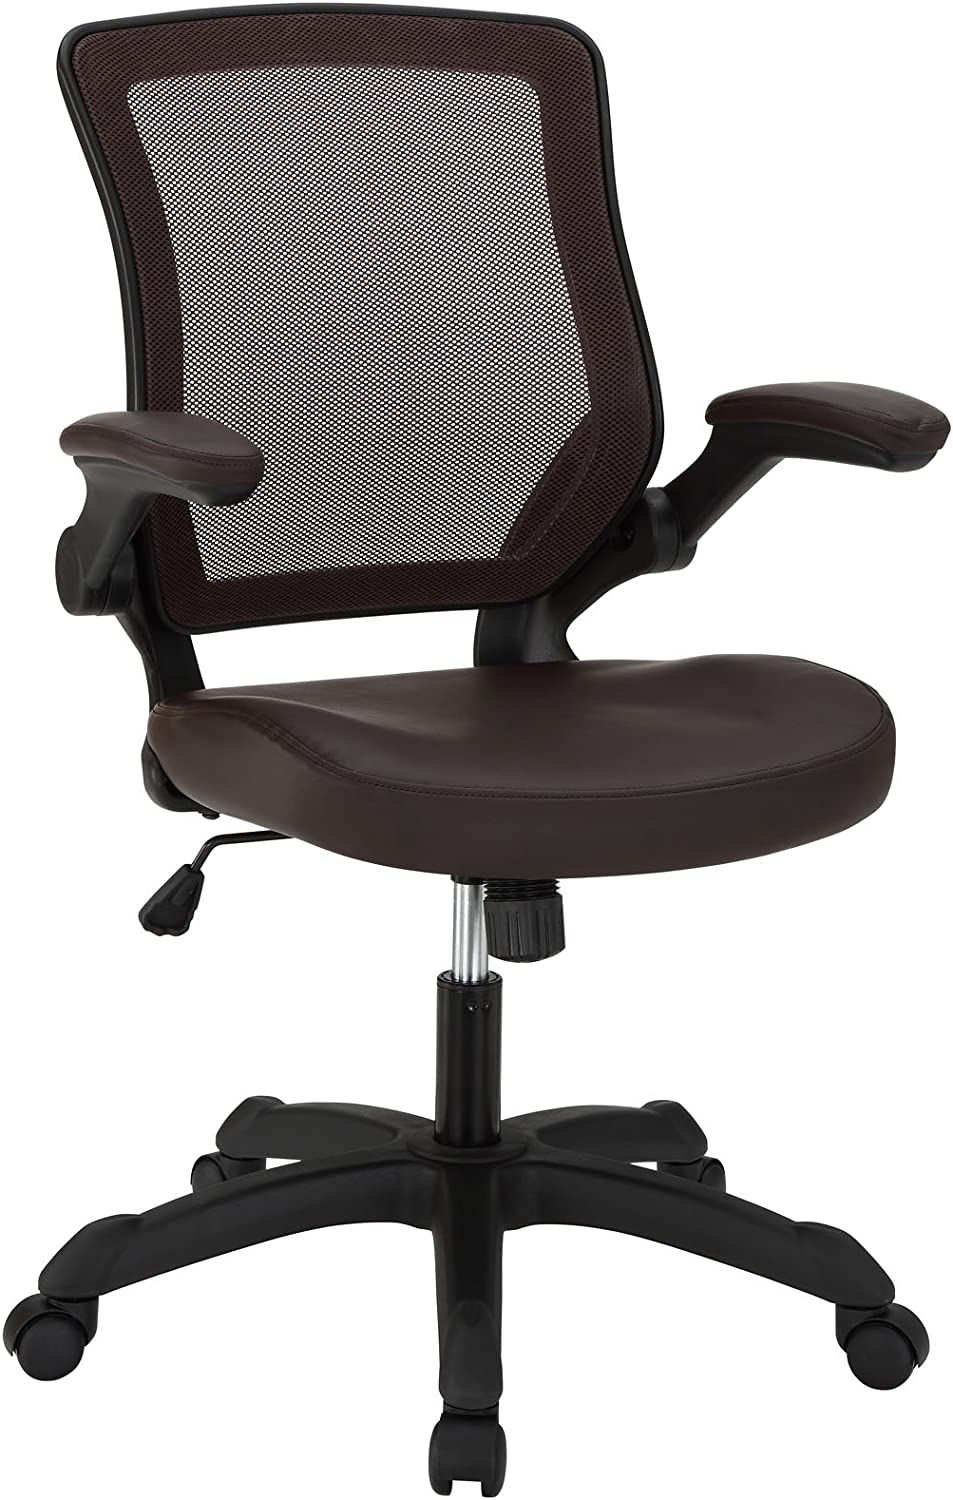 Modway Veer Office Chair with Mesh Back and Vinyl Seat, Brown